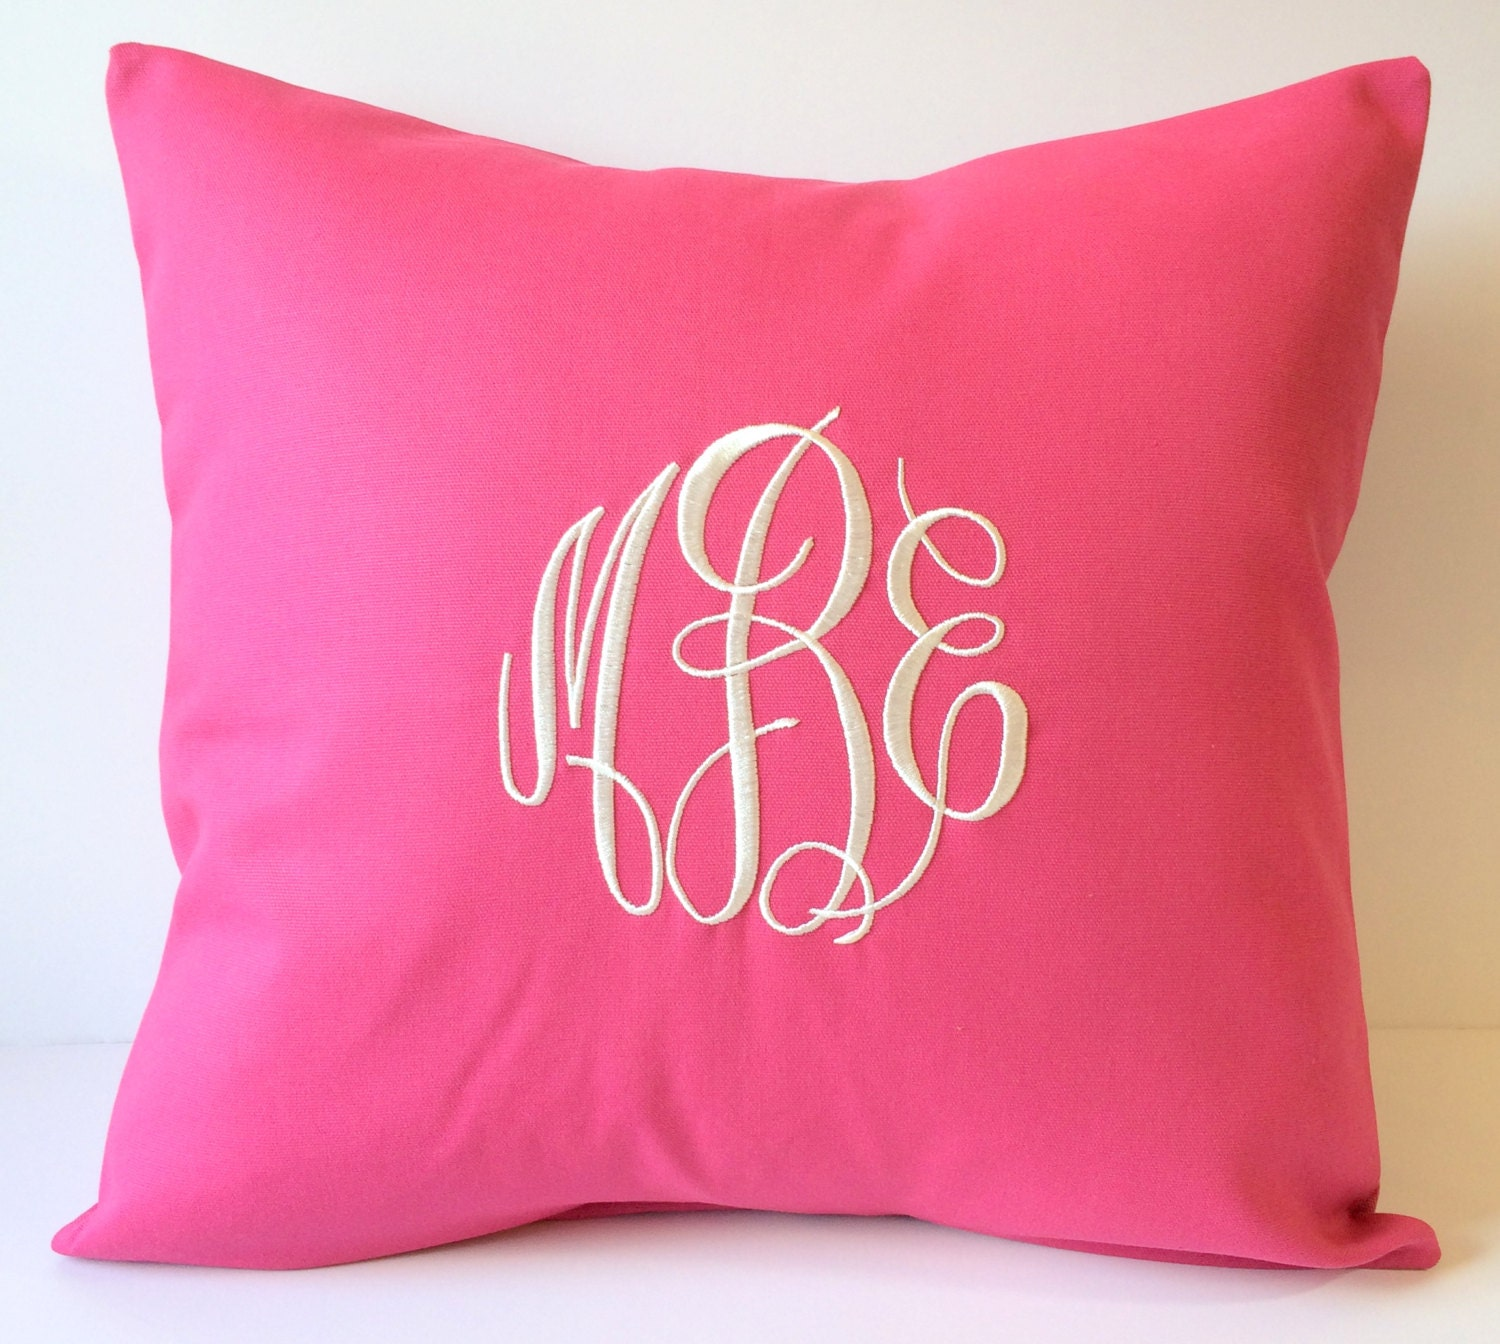 Decorative Pillows With Monogram : MONOGRAM Pillow Cover. 18 x 18 Decorative Pillow. Graduation